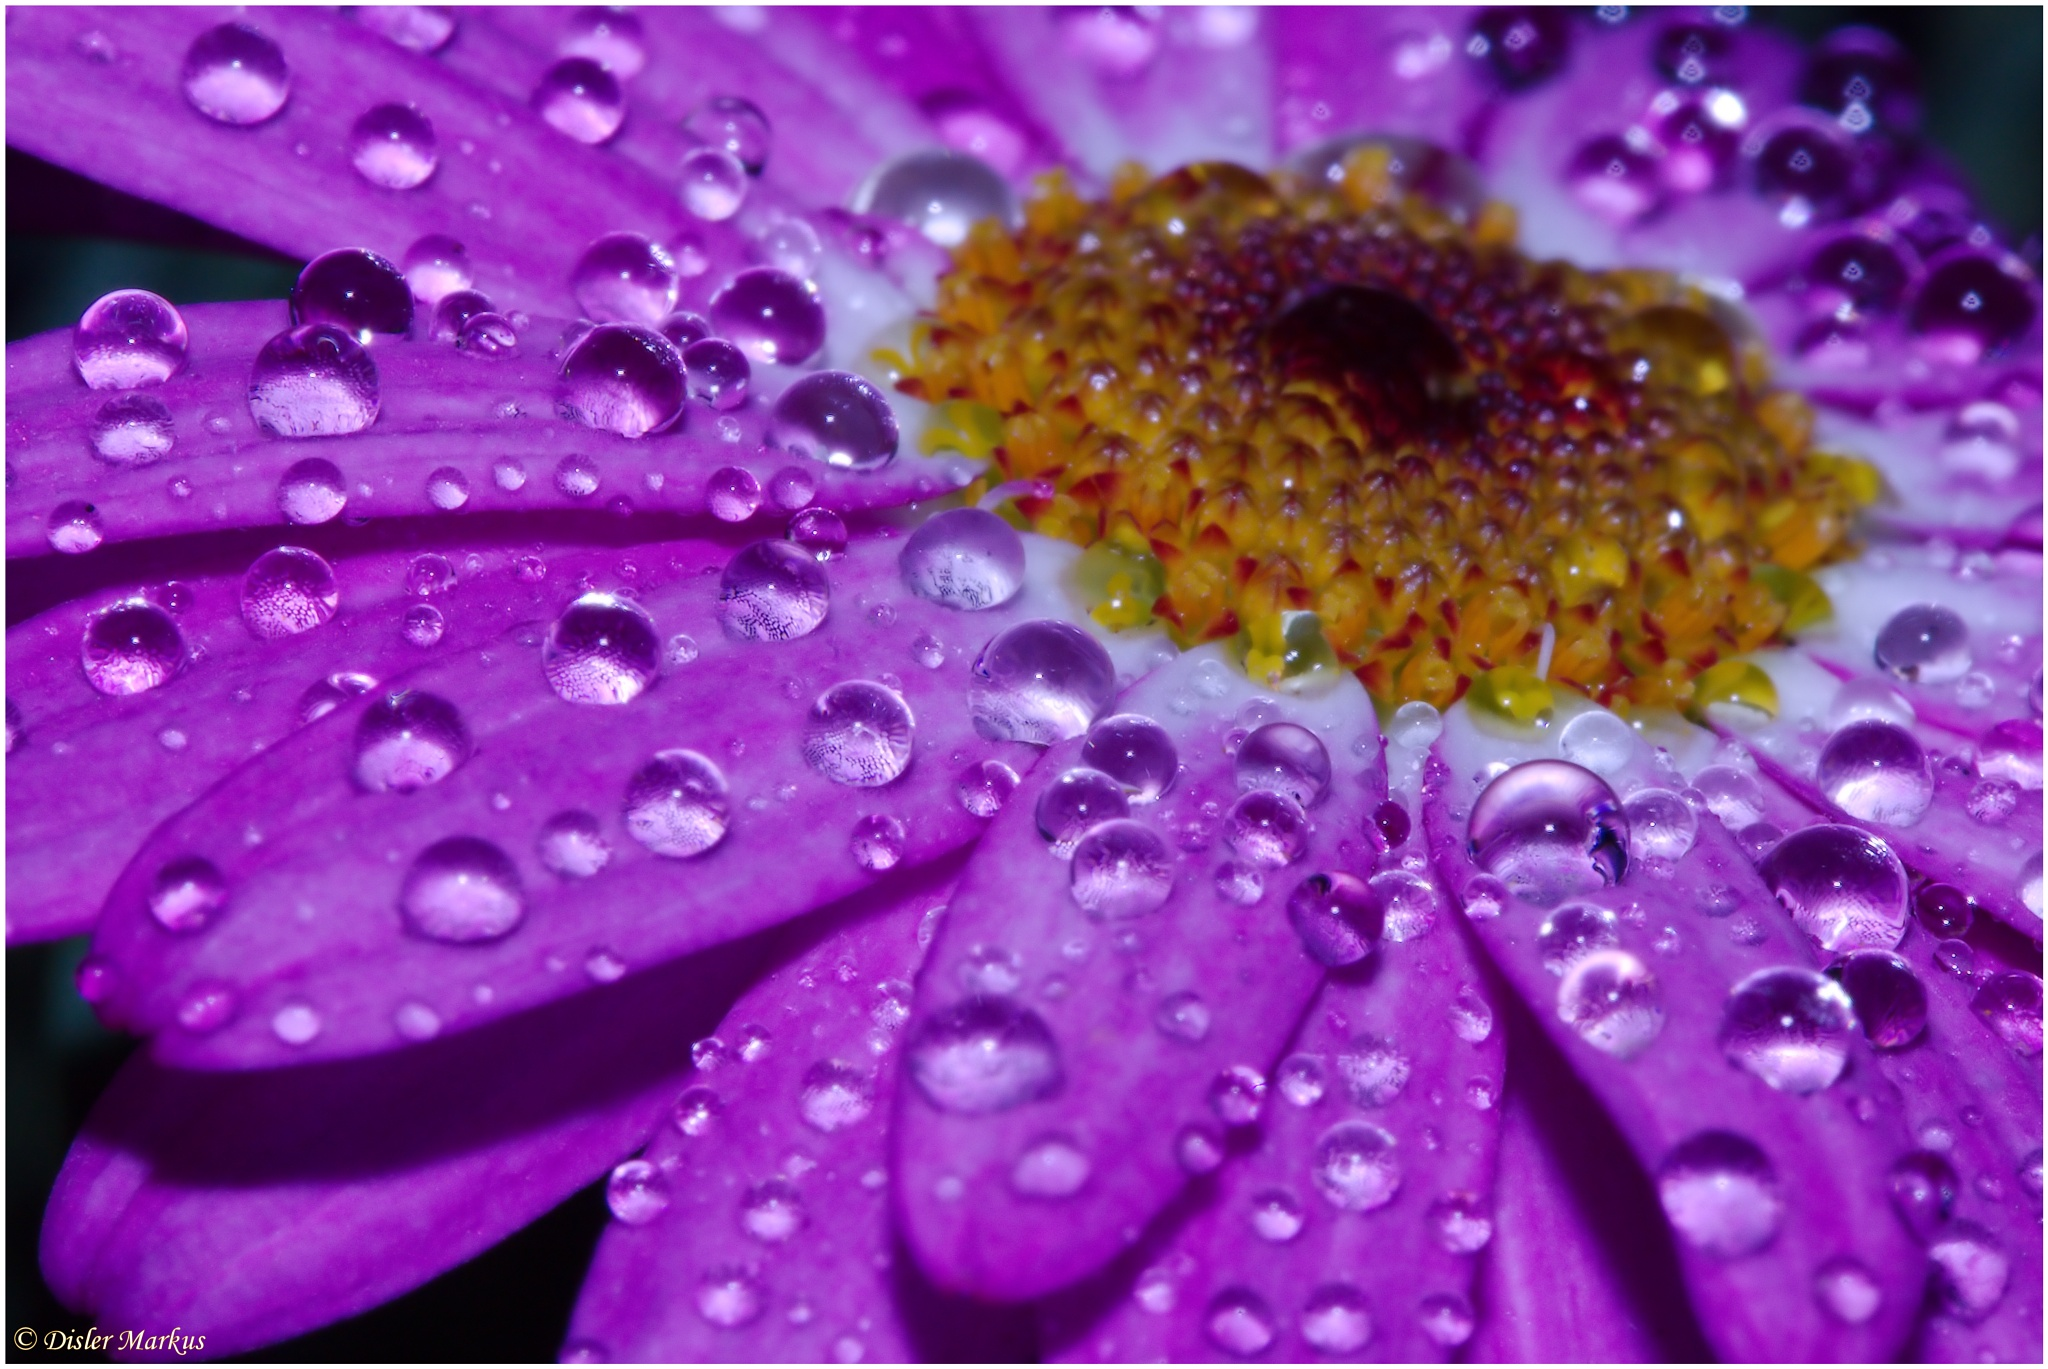 After the rain (Part 6) by Disler Markus